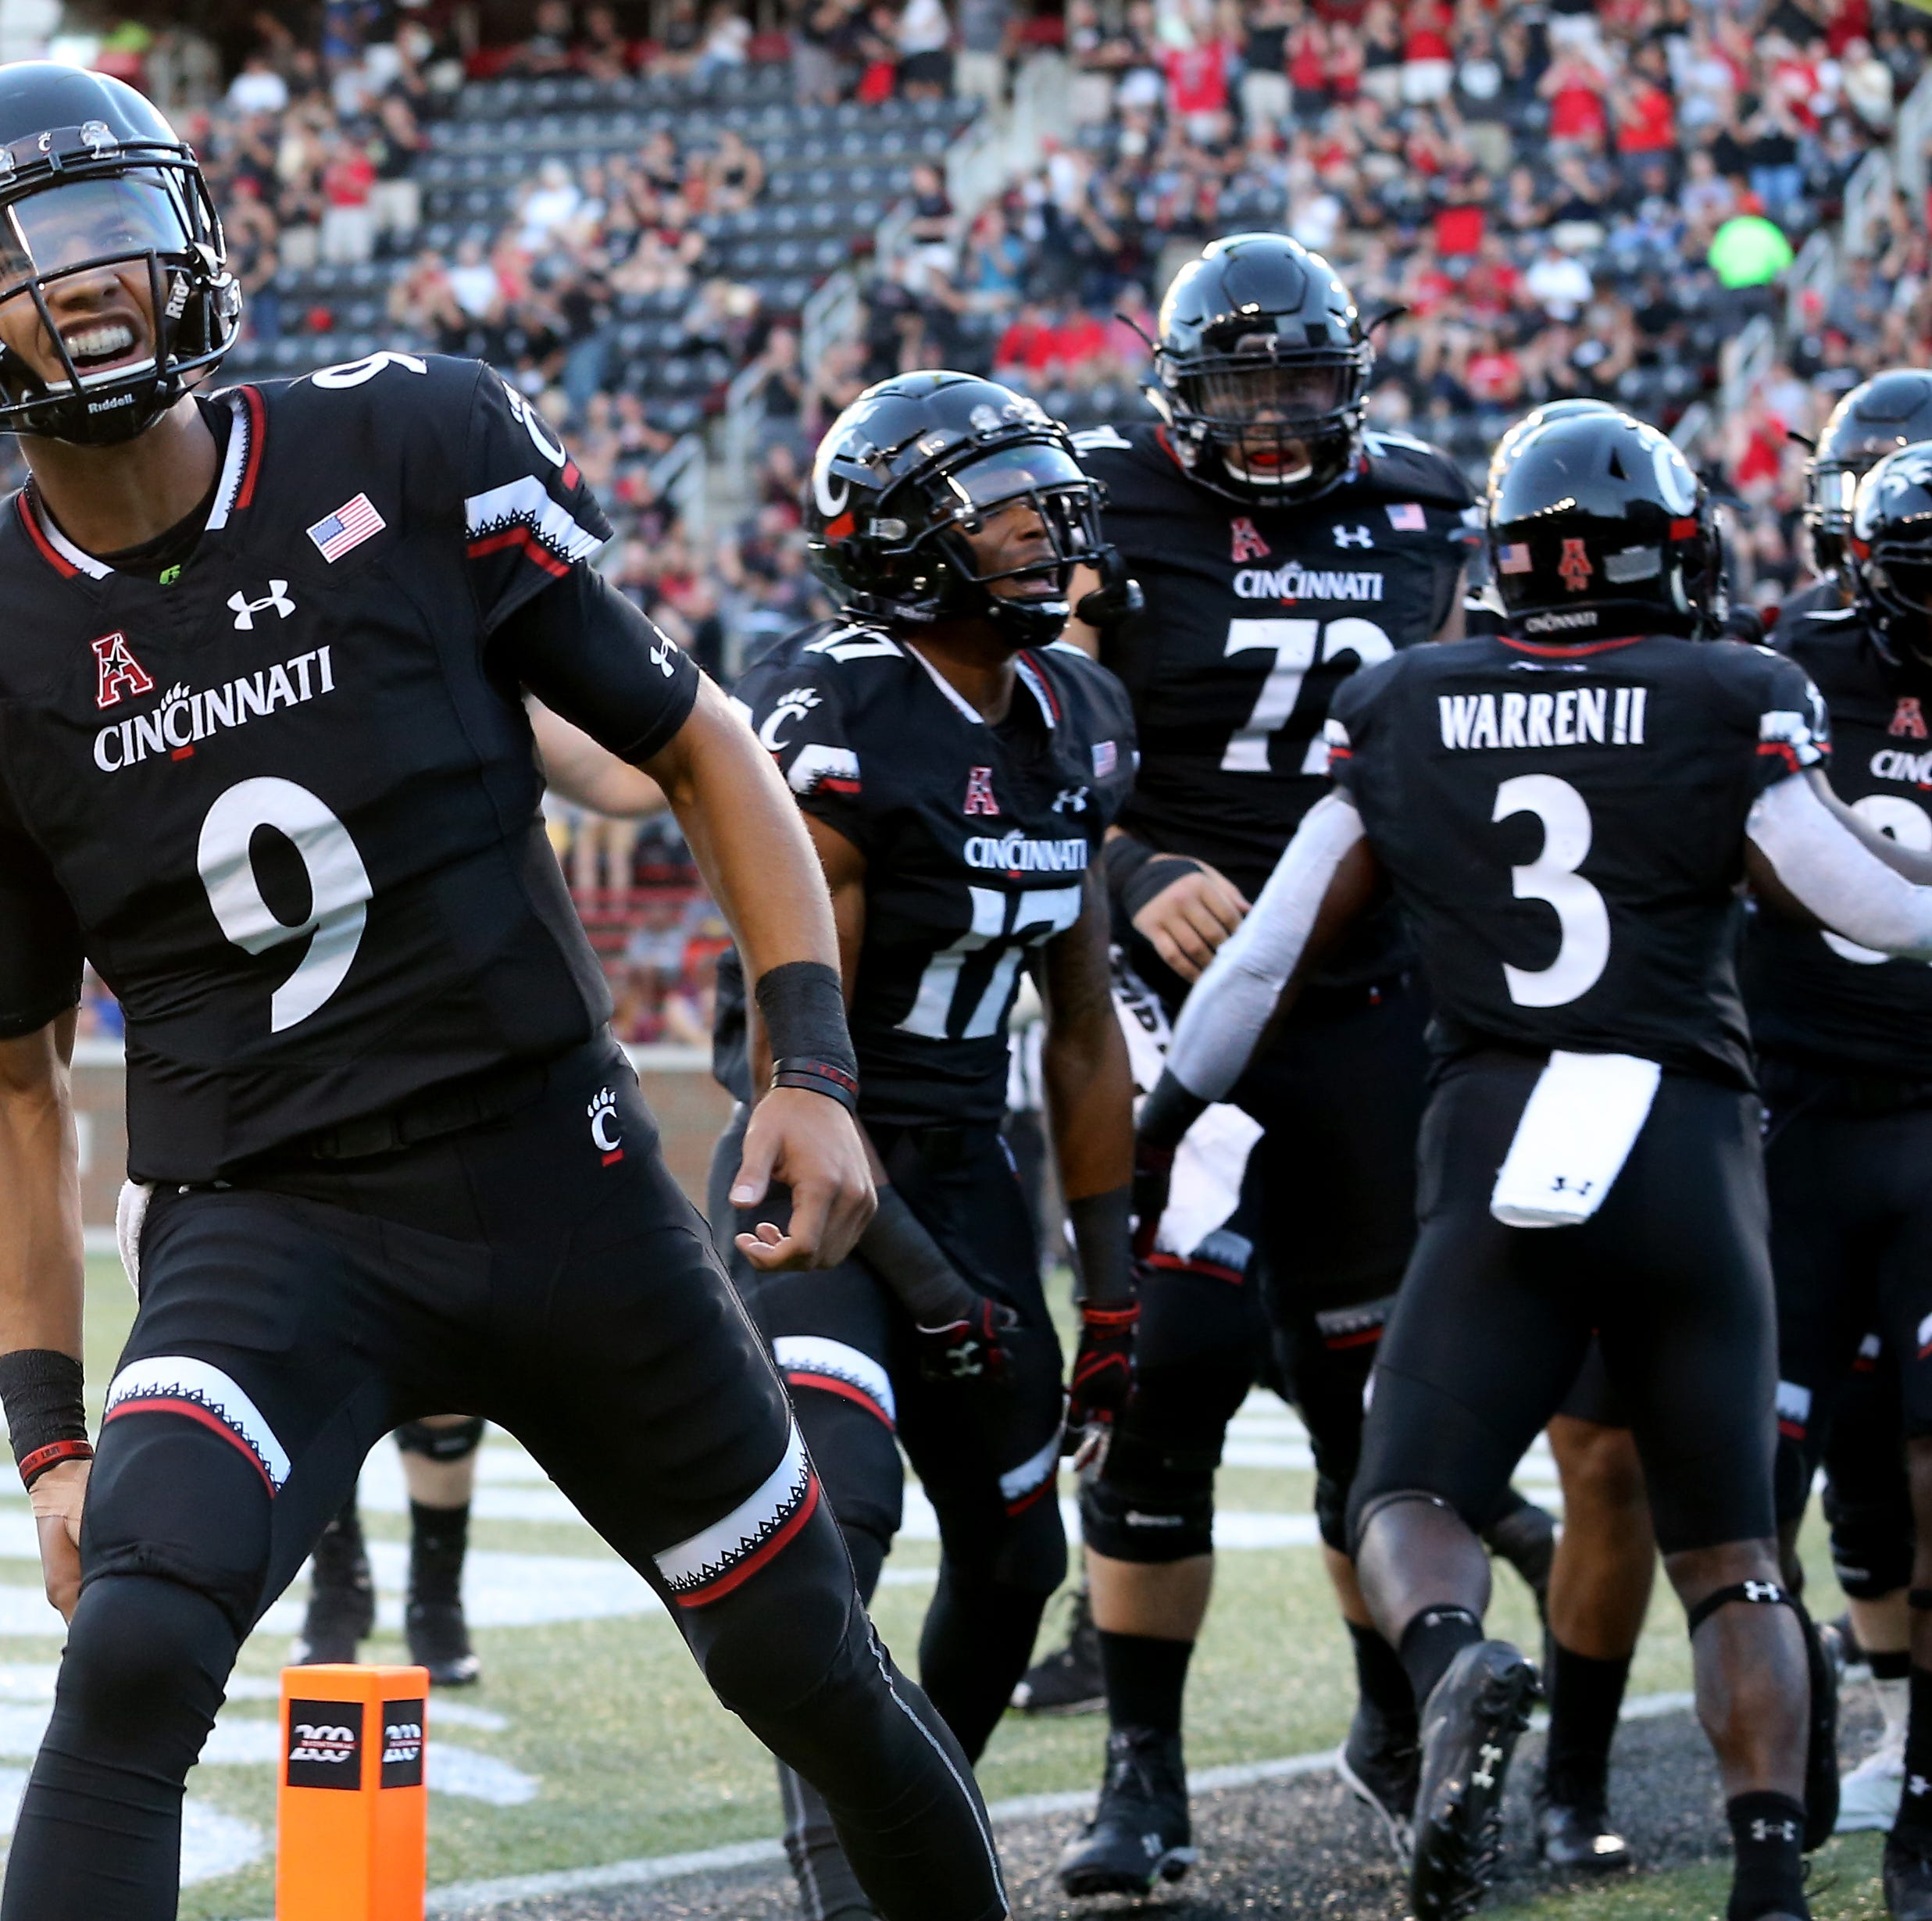 University of Cincinnati Bearcats football team moves up in weekly AAC power rankings